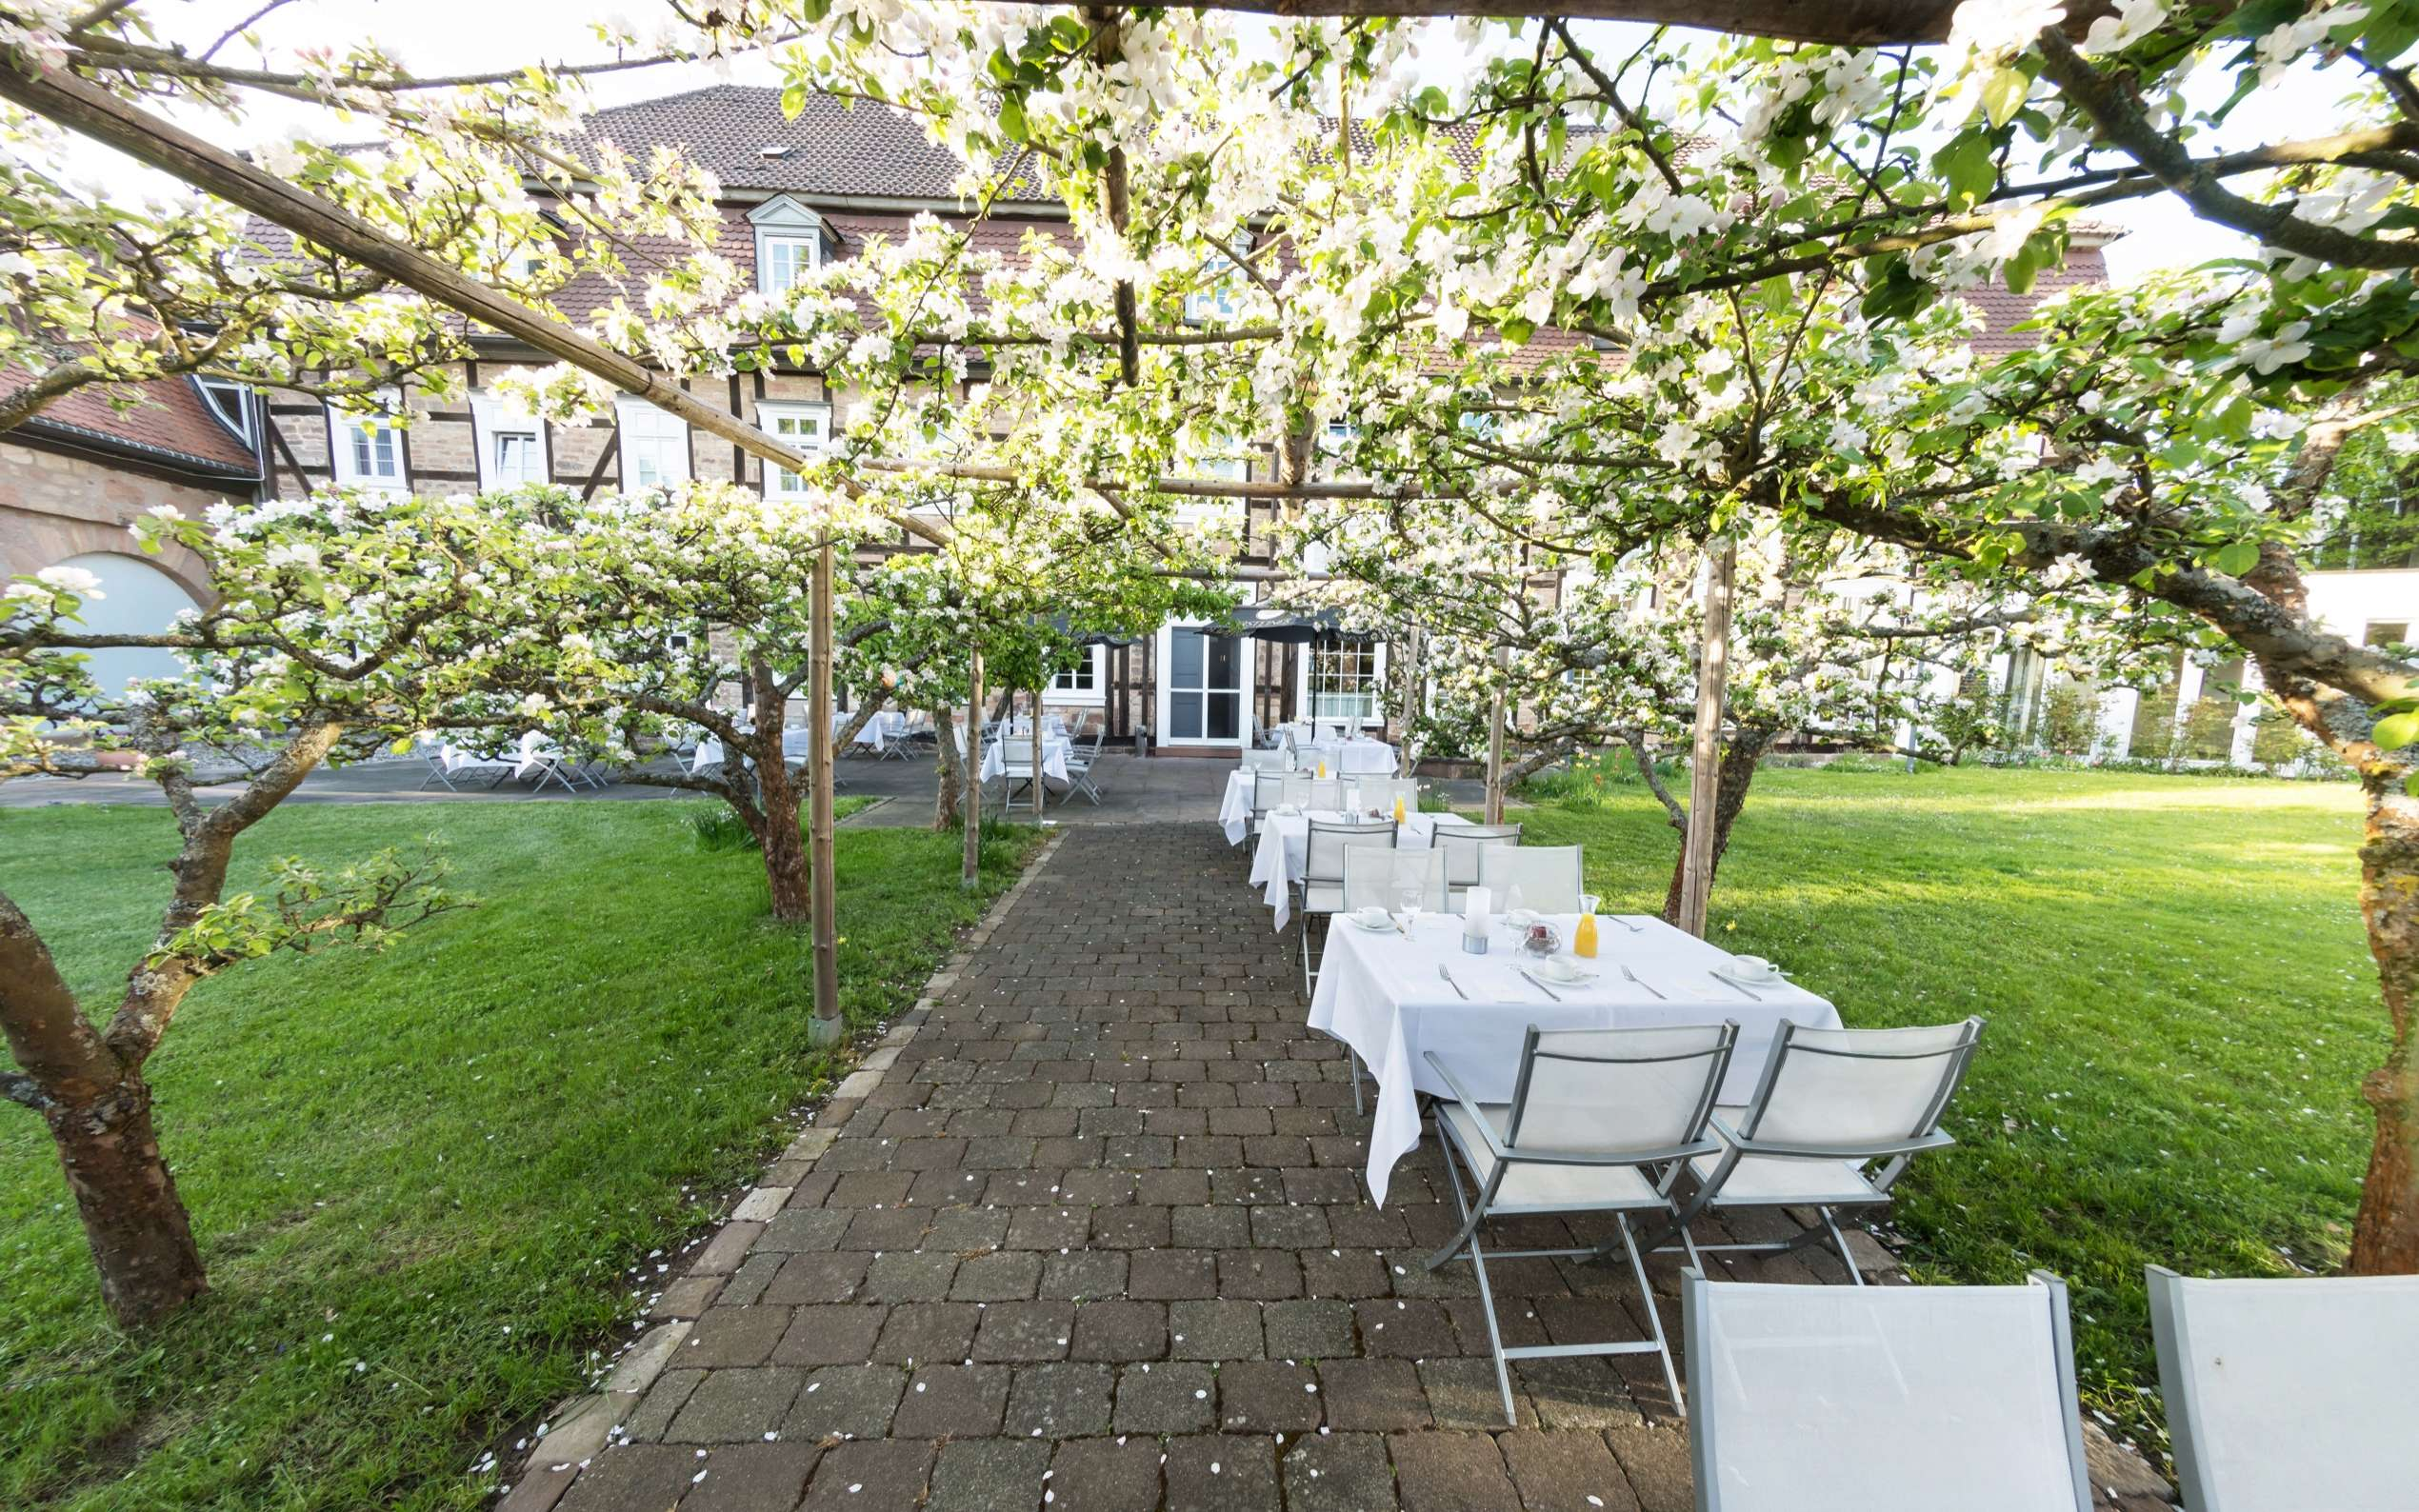 Welcome Hotel Bad Arolsen Restaurant Orangerie Terrasse 02